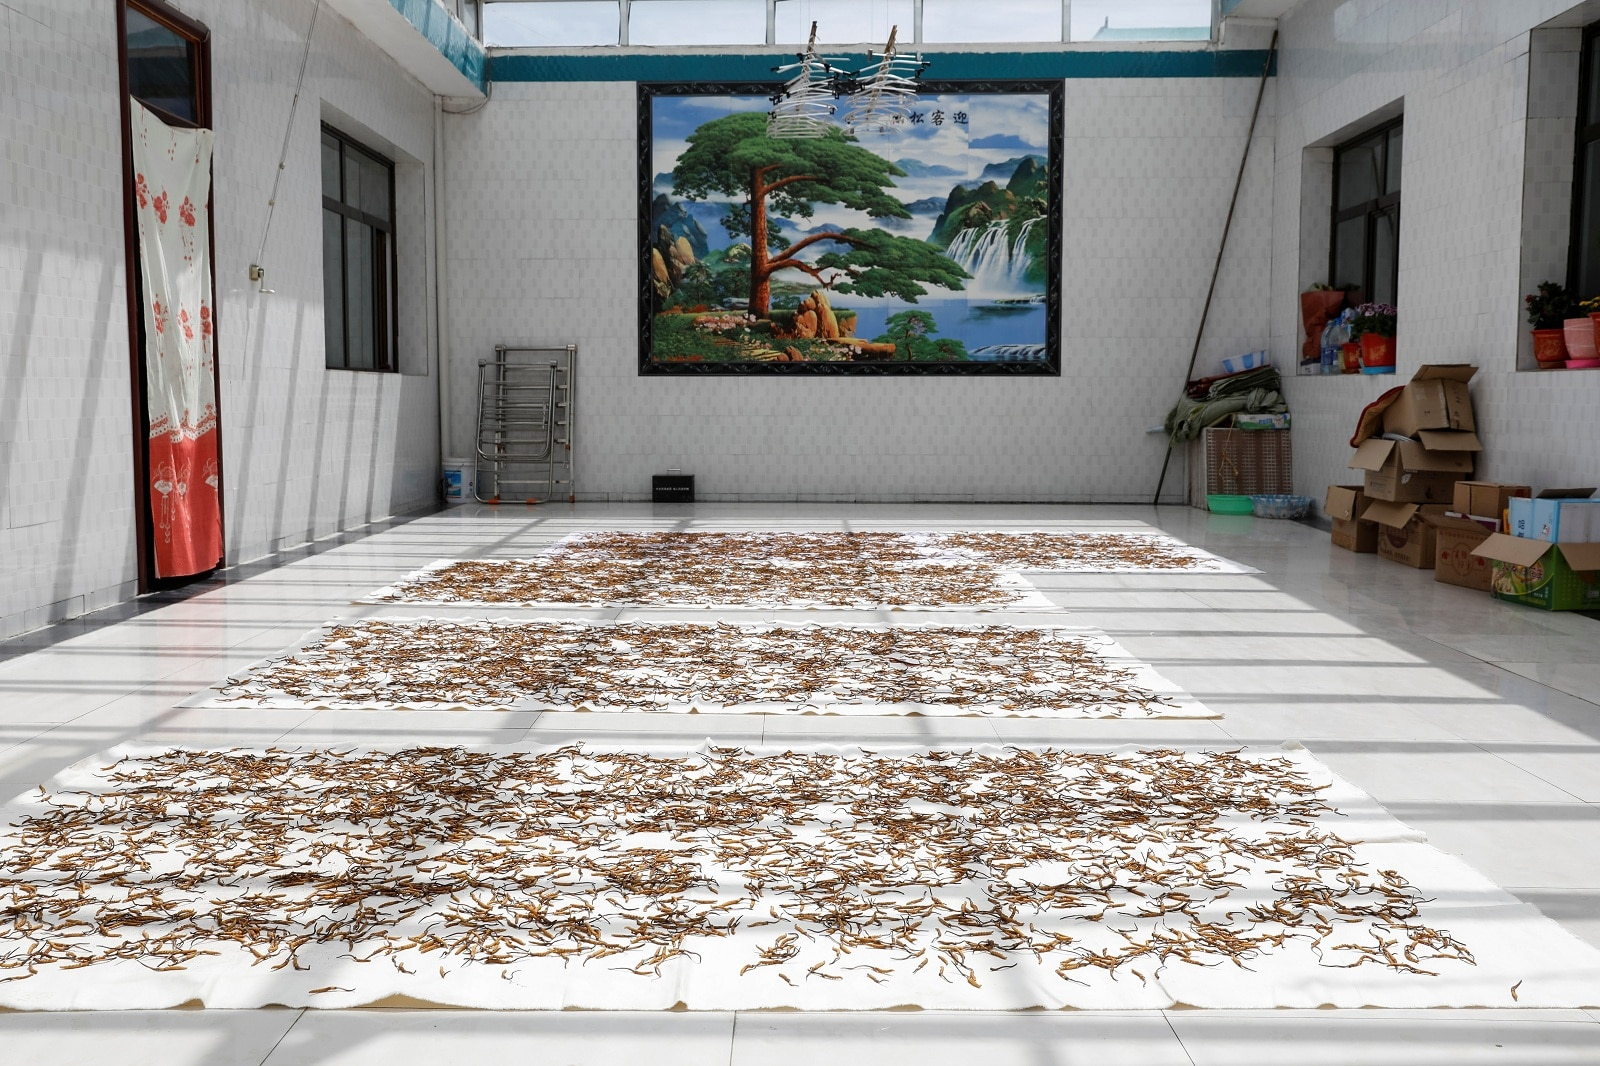 Cordyceps are laid out on cloth for drying inside a cordyceps trader's house in Hainan Tibetan Autonomous Prefecture, Qinghai province, China June 7, 2019. REUTERS/Aly Song